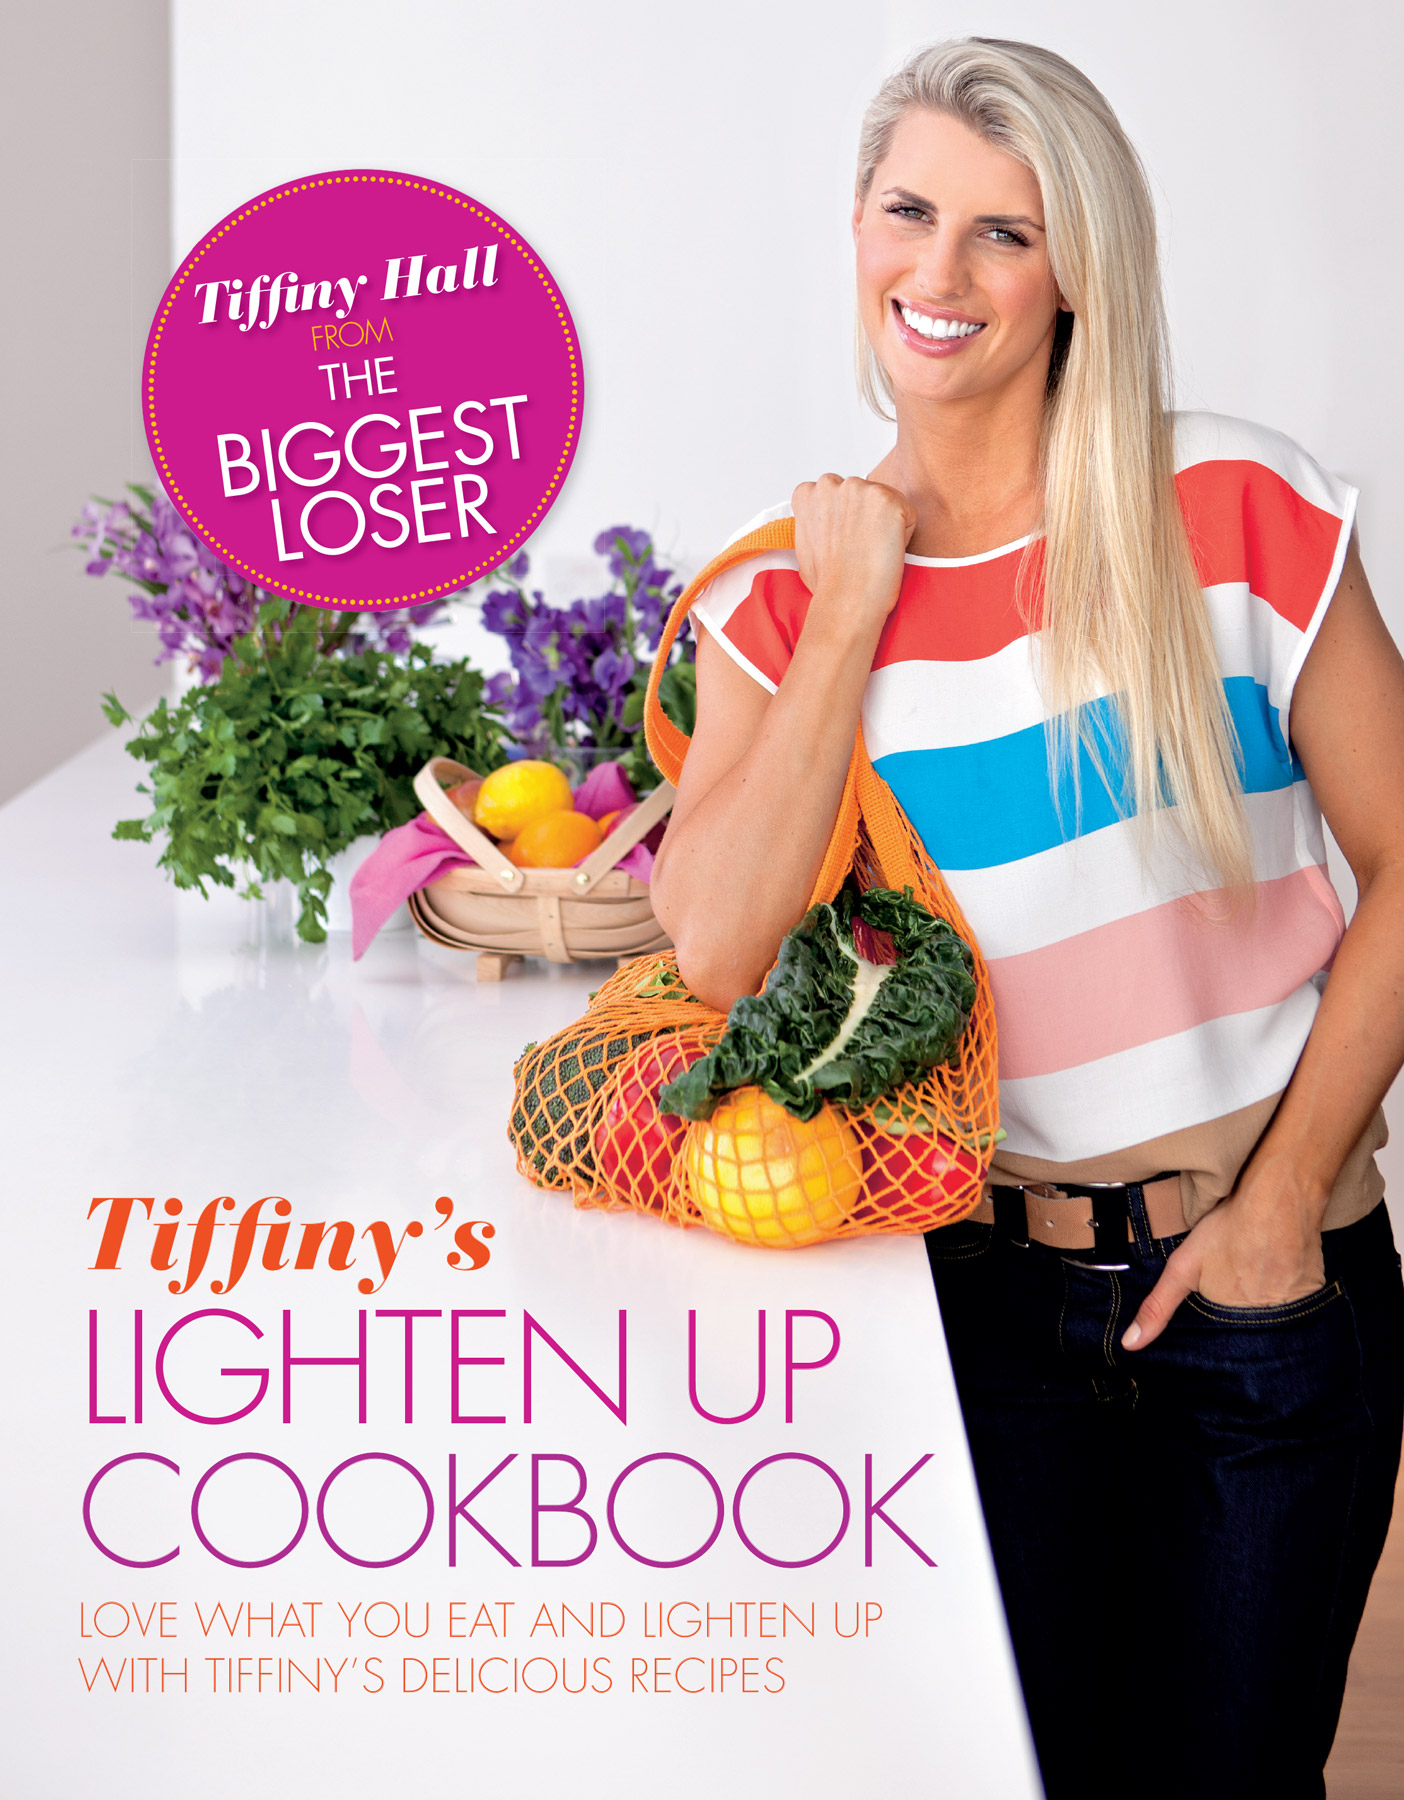 Tiffiny's Lighten Up Cookbook